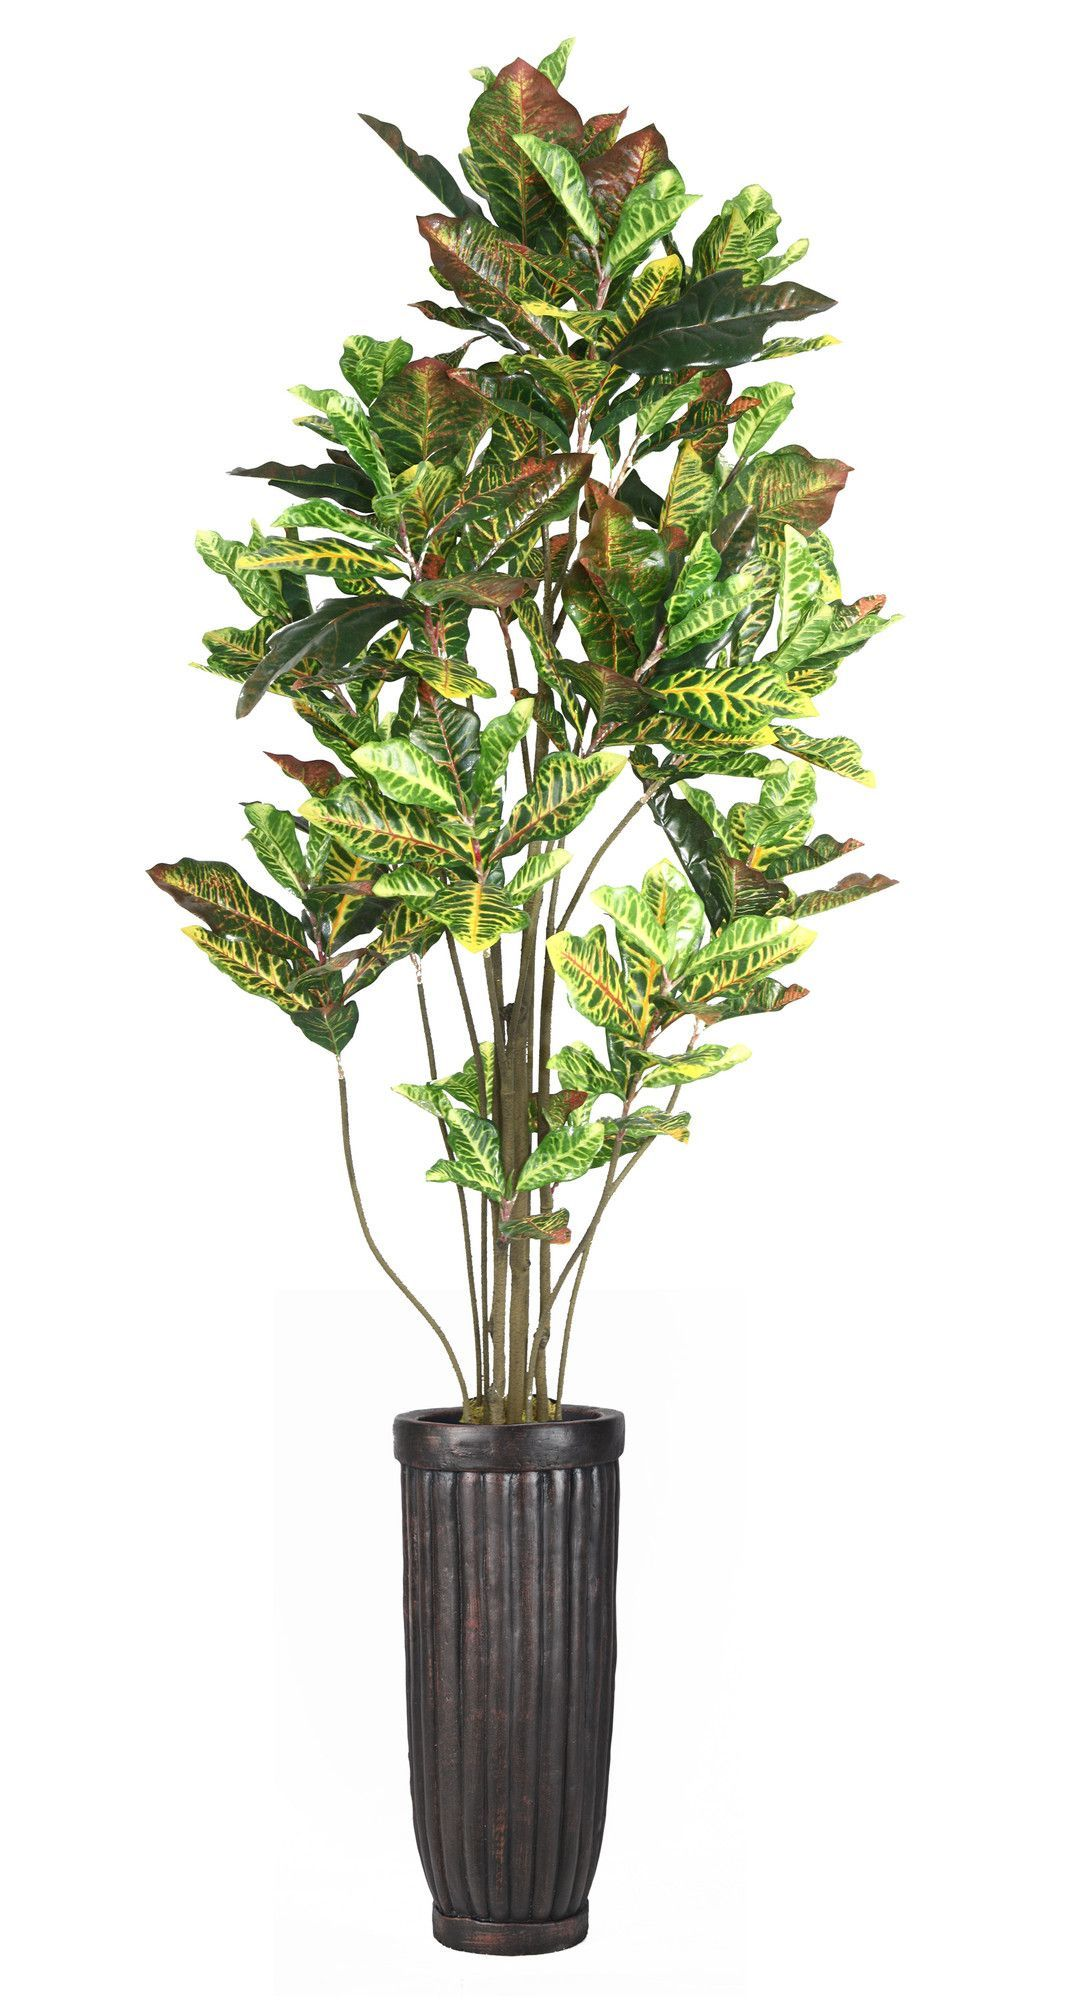 Laura Ashley Home Croton Tree in Planter flower 花